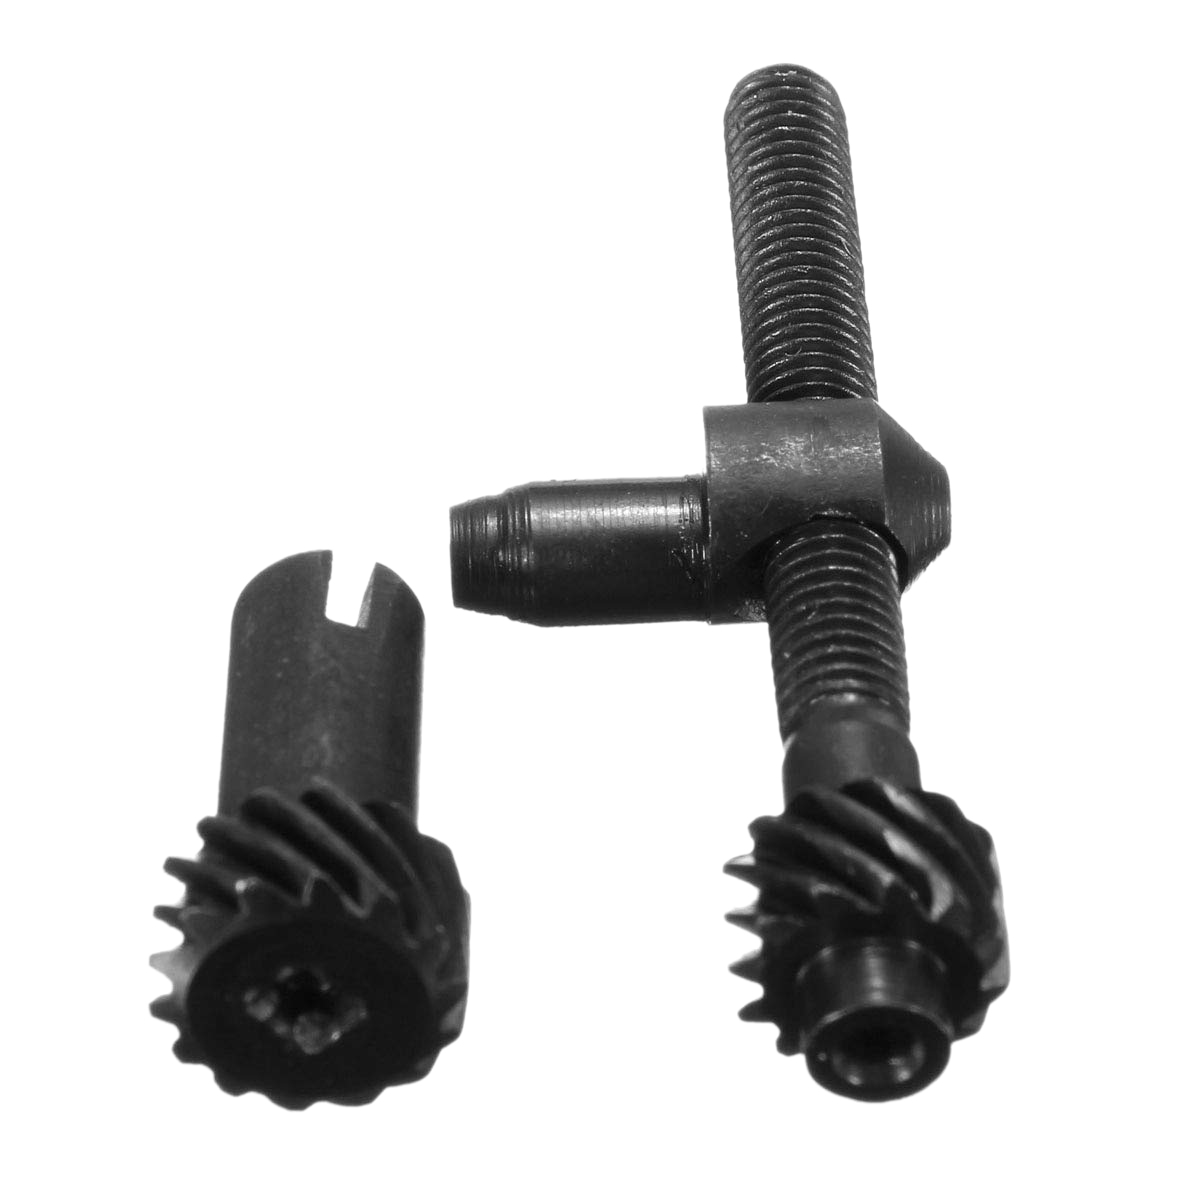 Chain Adjuster Tensioner Screw For Timberpro Lawnflite Chinese Chainsaw 2500 25cc Promotion